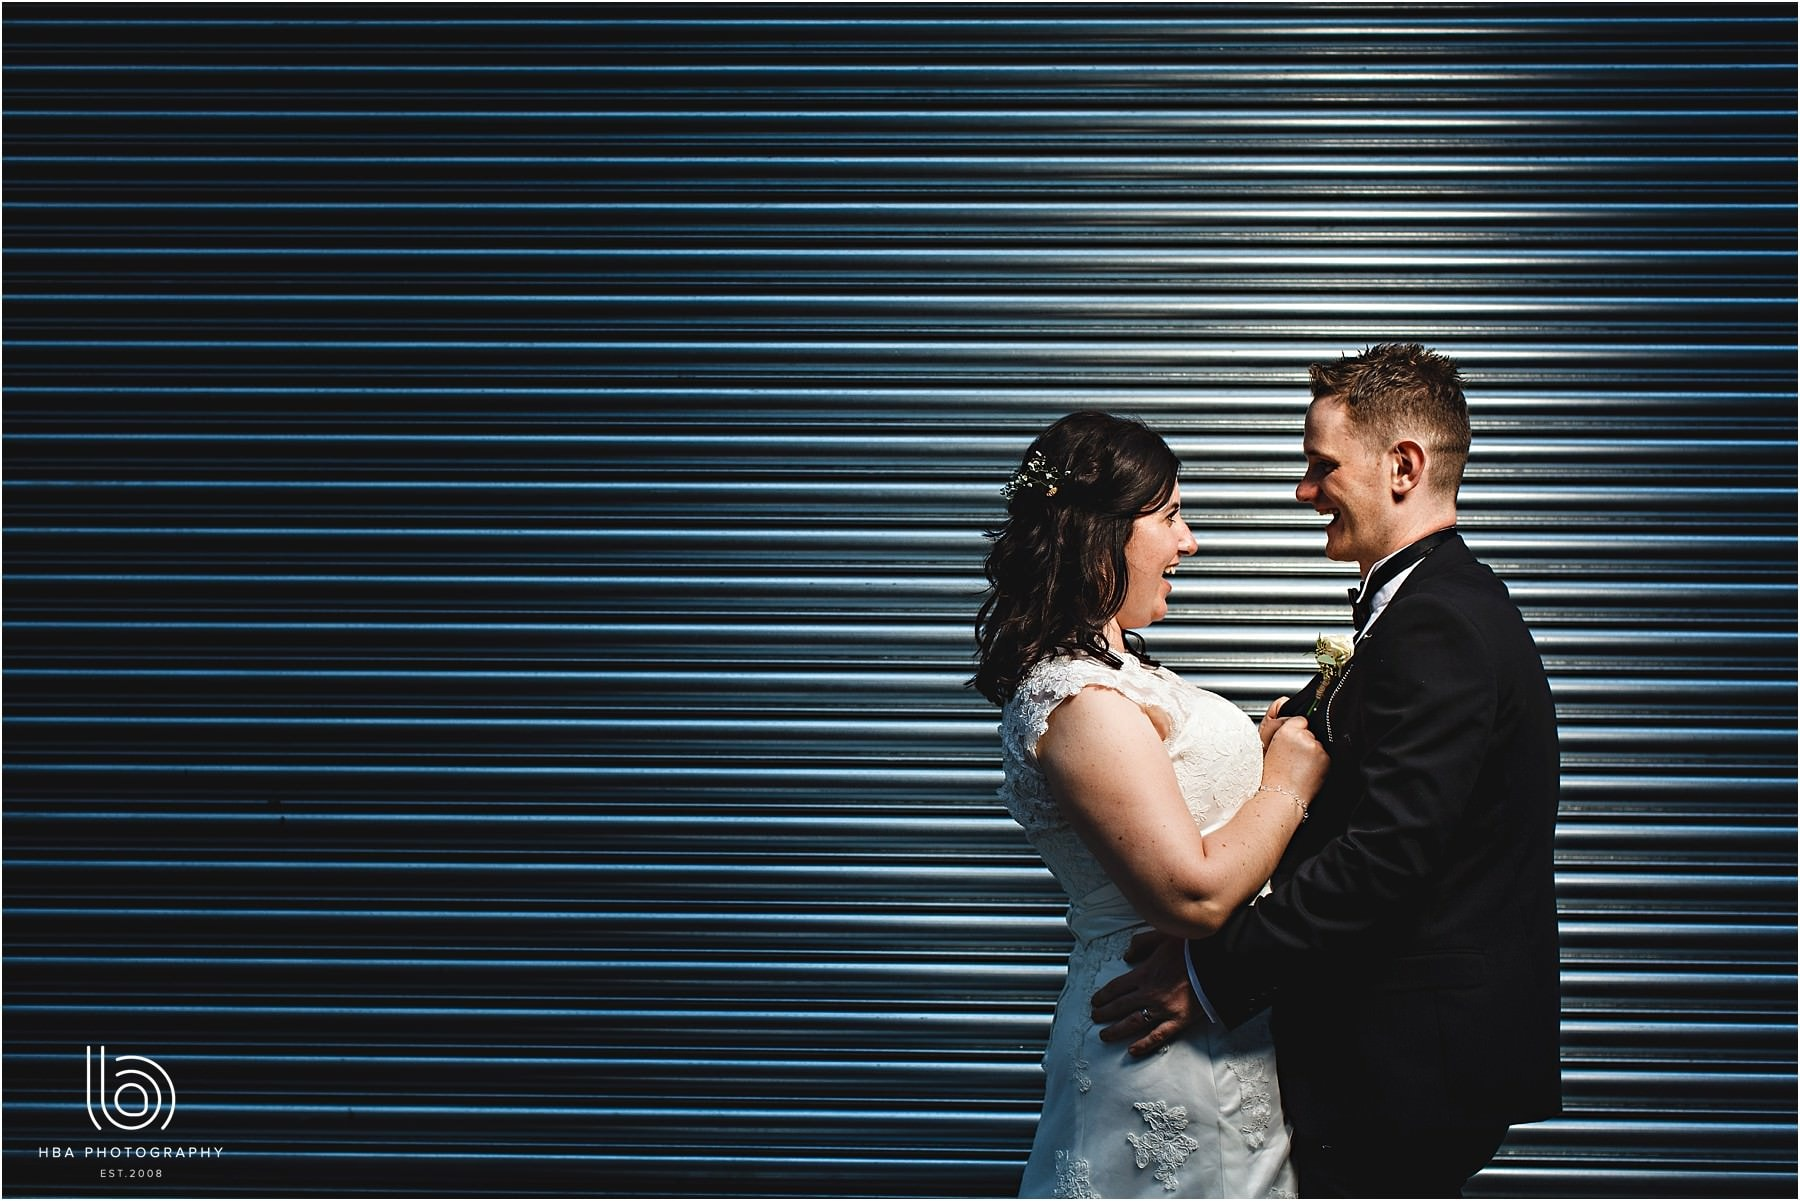 the bride and groom against blue shutter doors in the streets of Leicester City